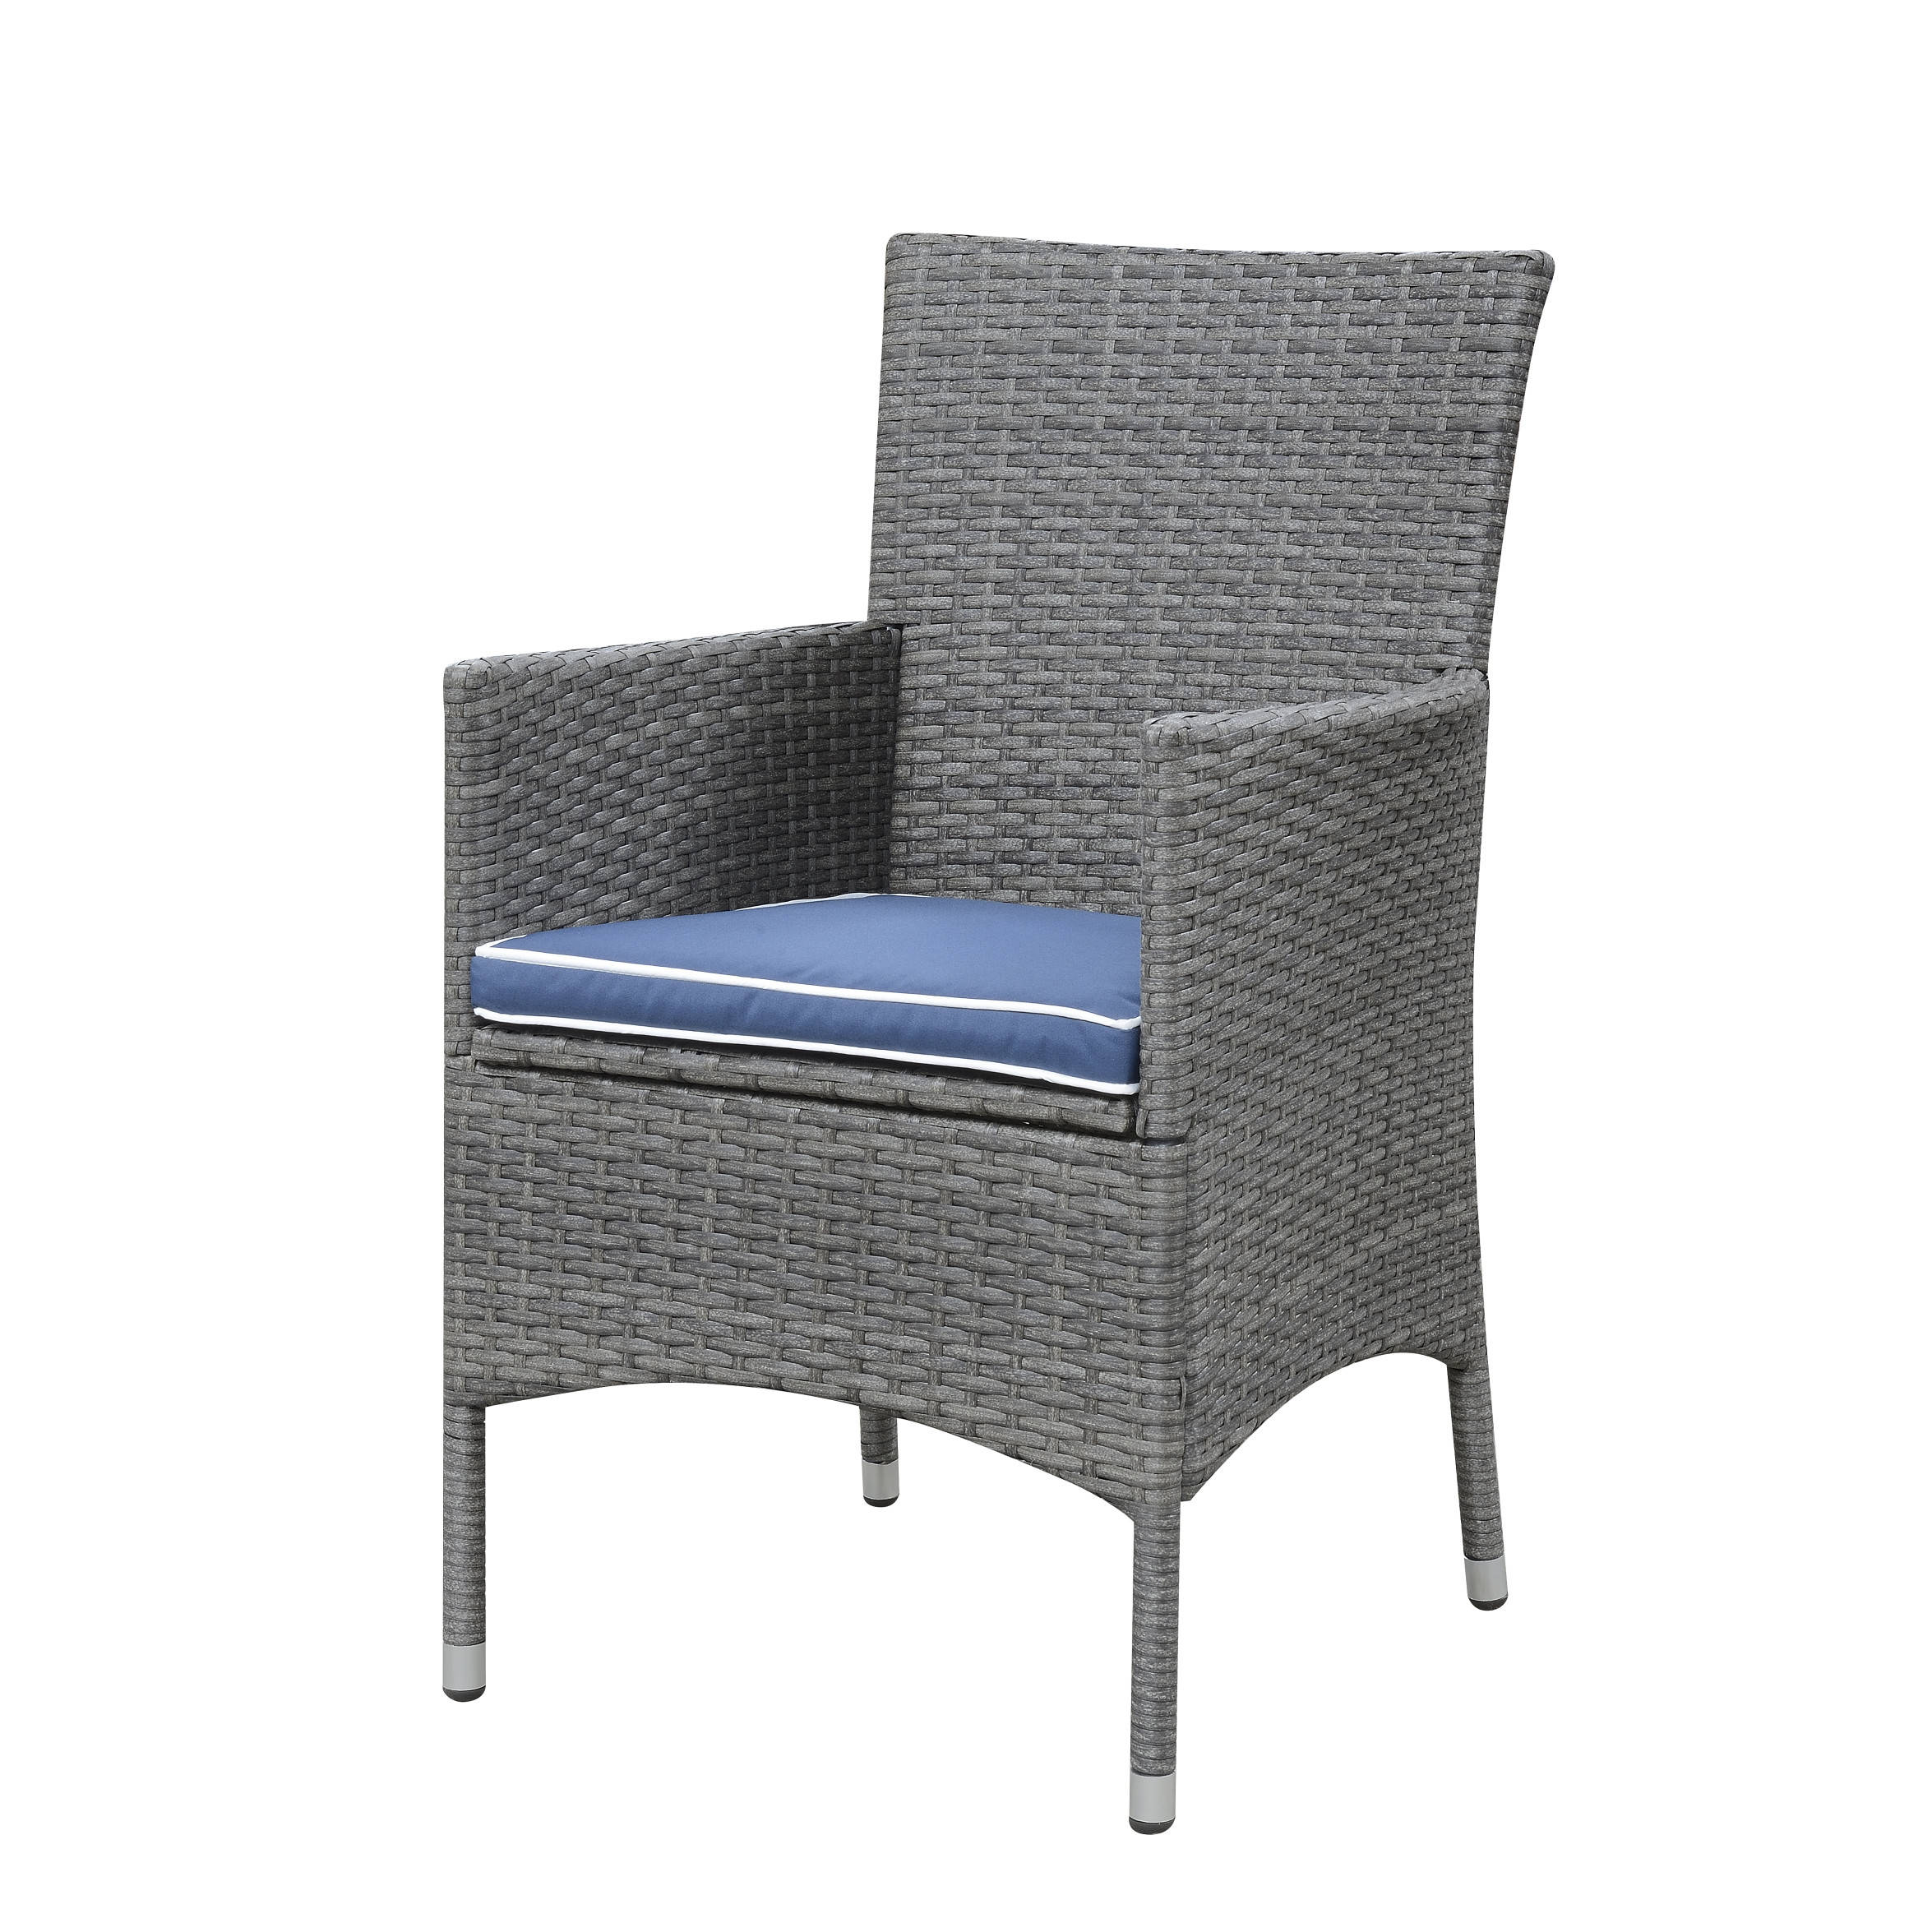 Emerald Home Ridgemonte Gray Outdoor Dining Arm Chair The Cly